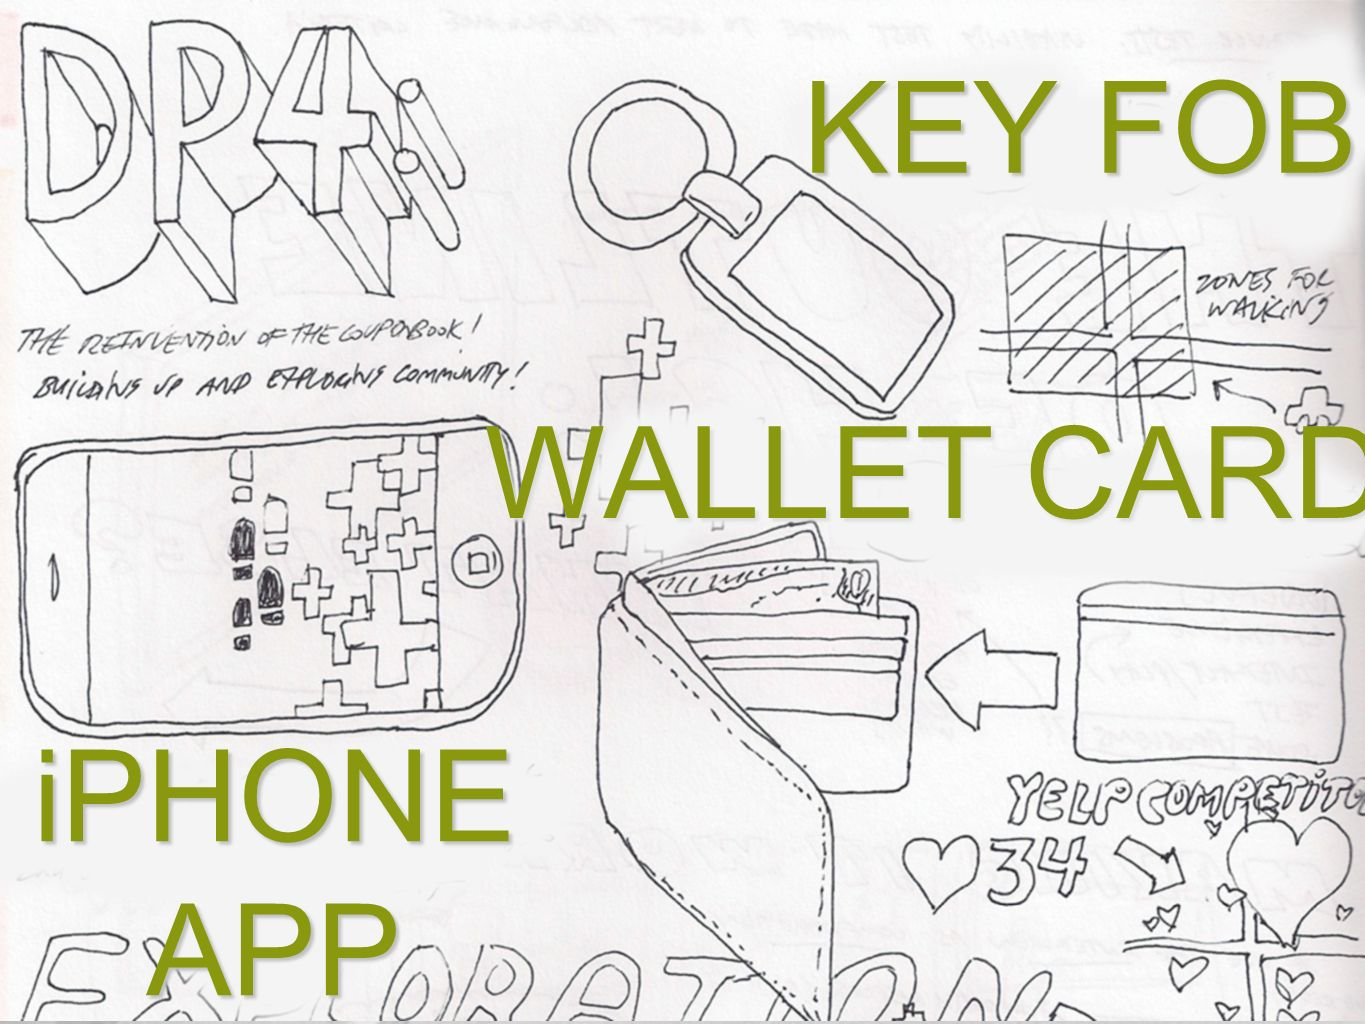 KEY FOB WALLET CARD iPHONE APP